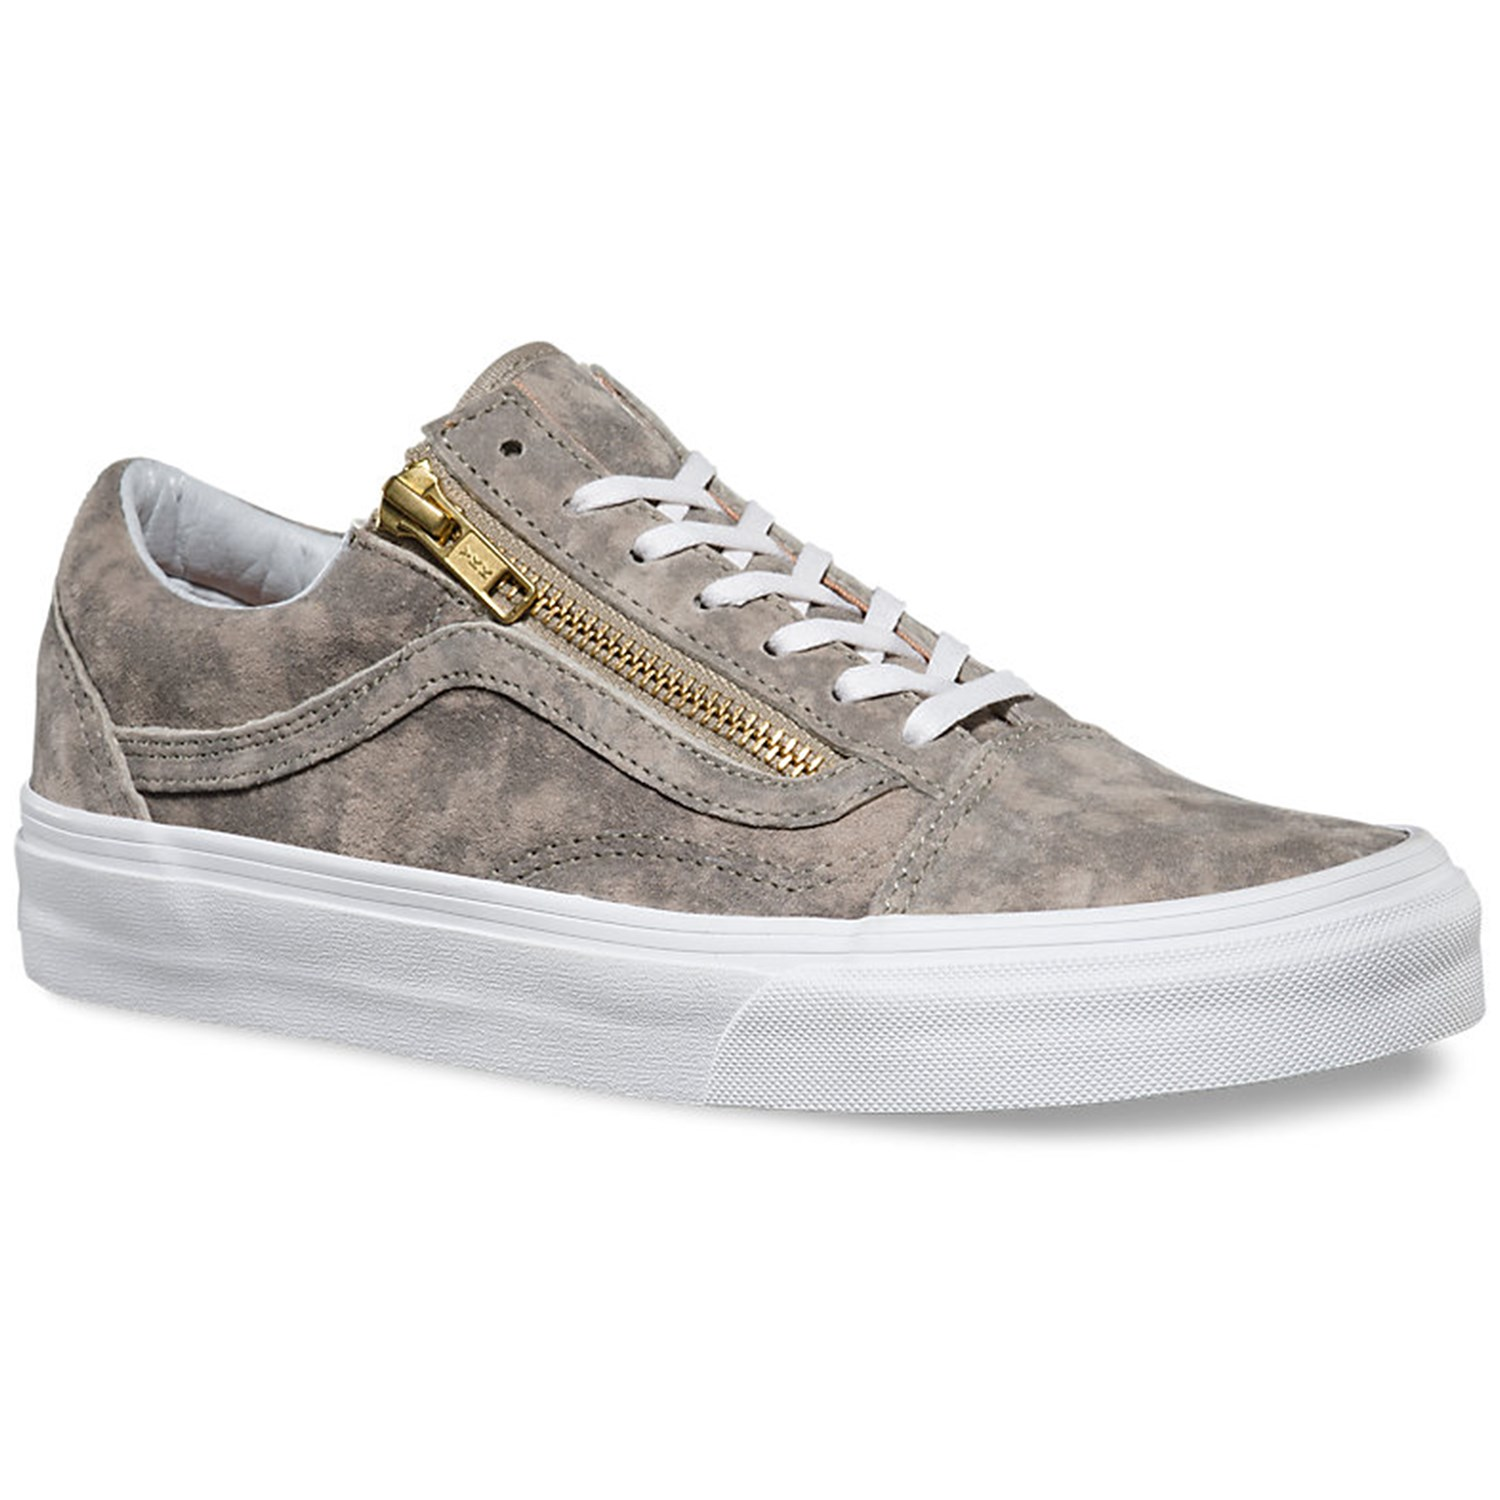 Vans Old Skool Zip Suede Shoes - Women s  3c48843ce5